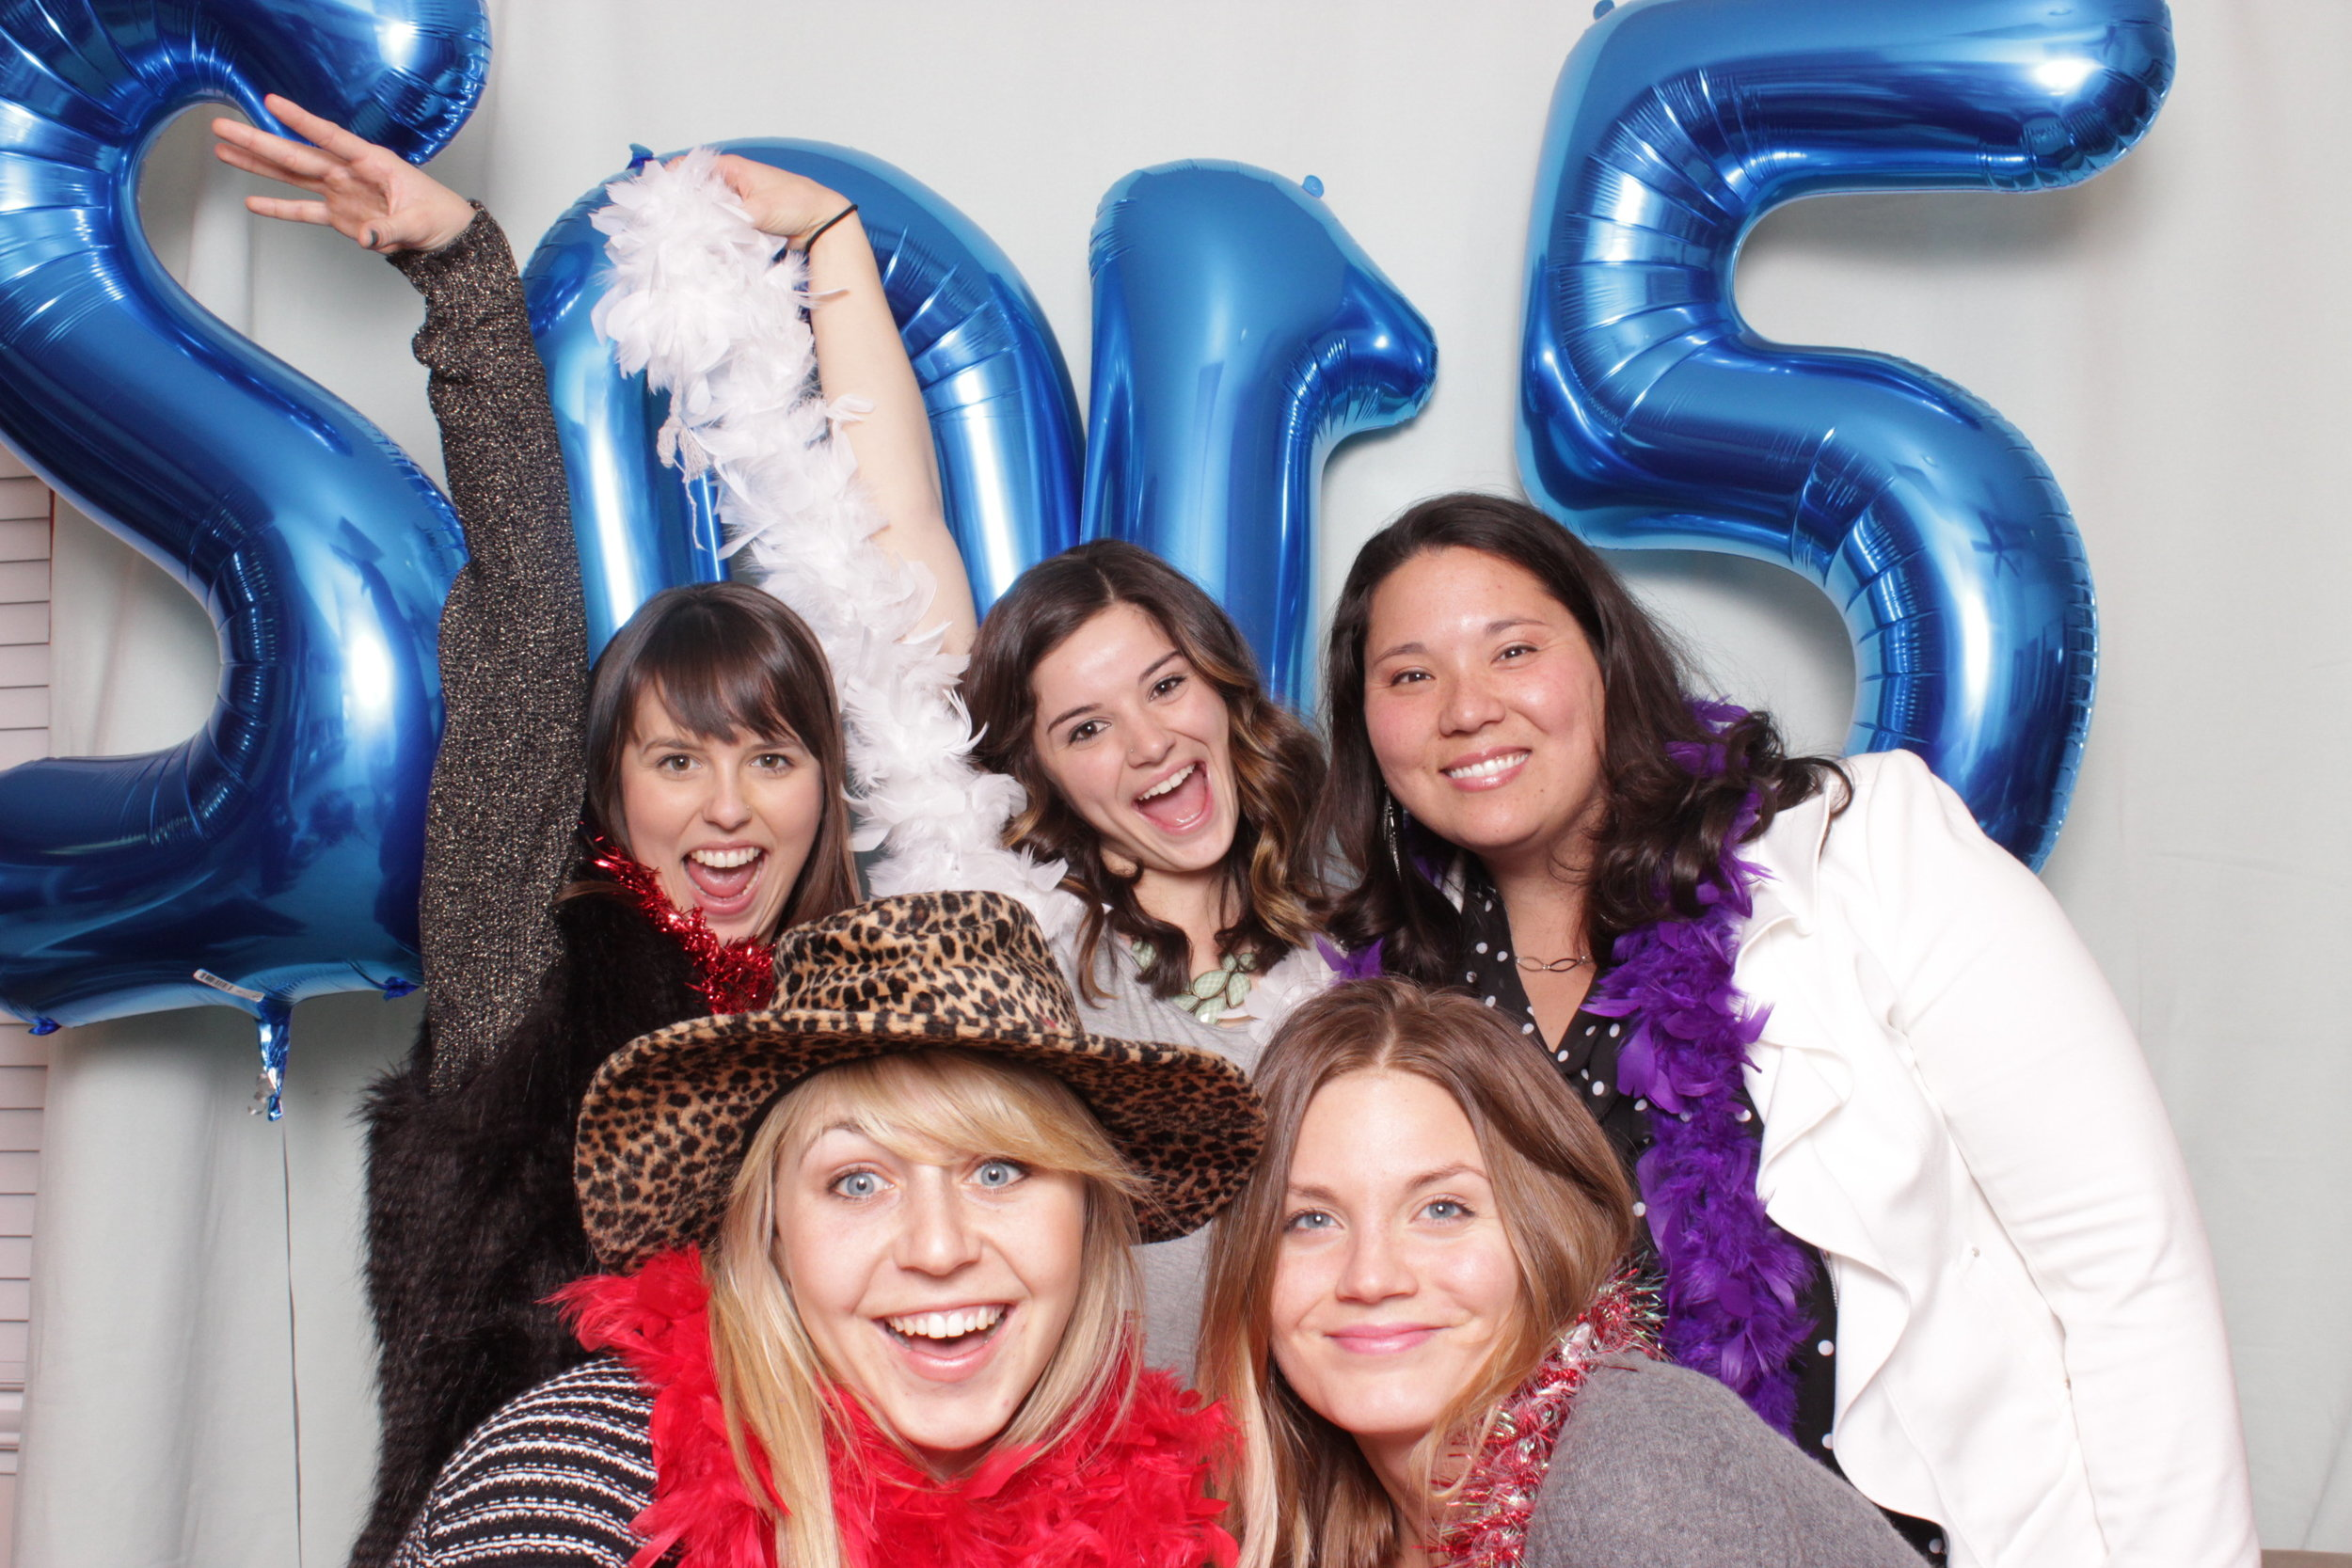 photo-booth-rental-in-chico-california-new-years-party-girls